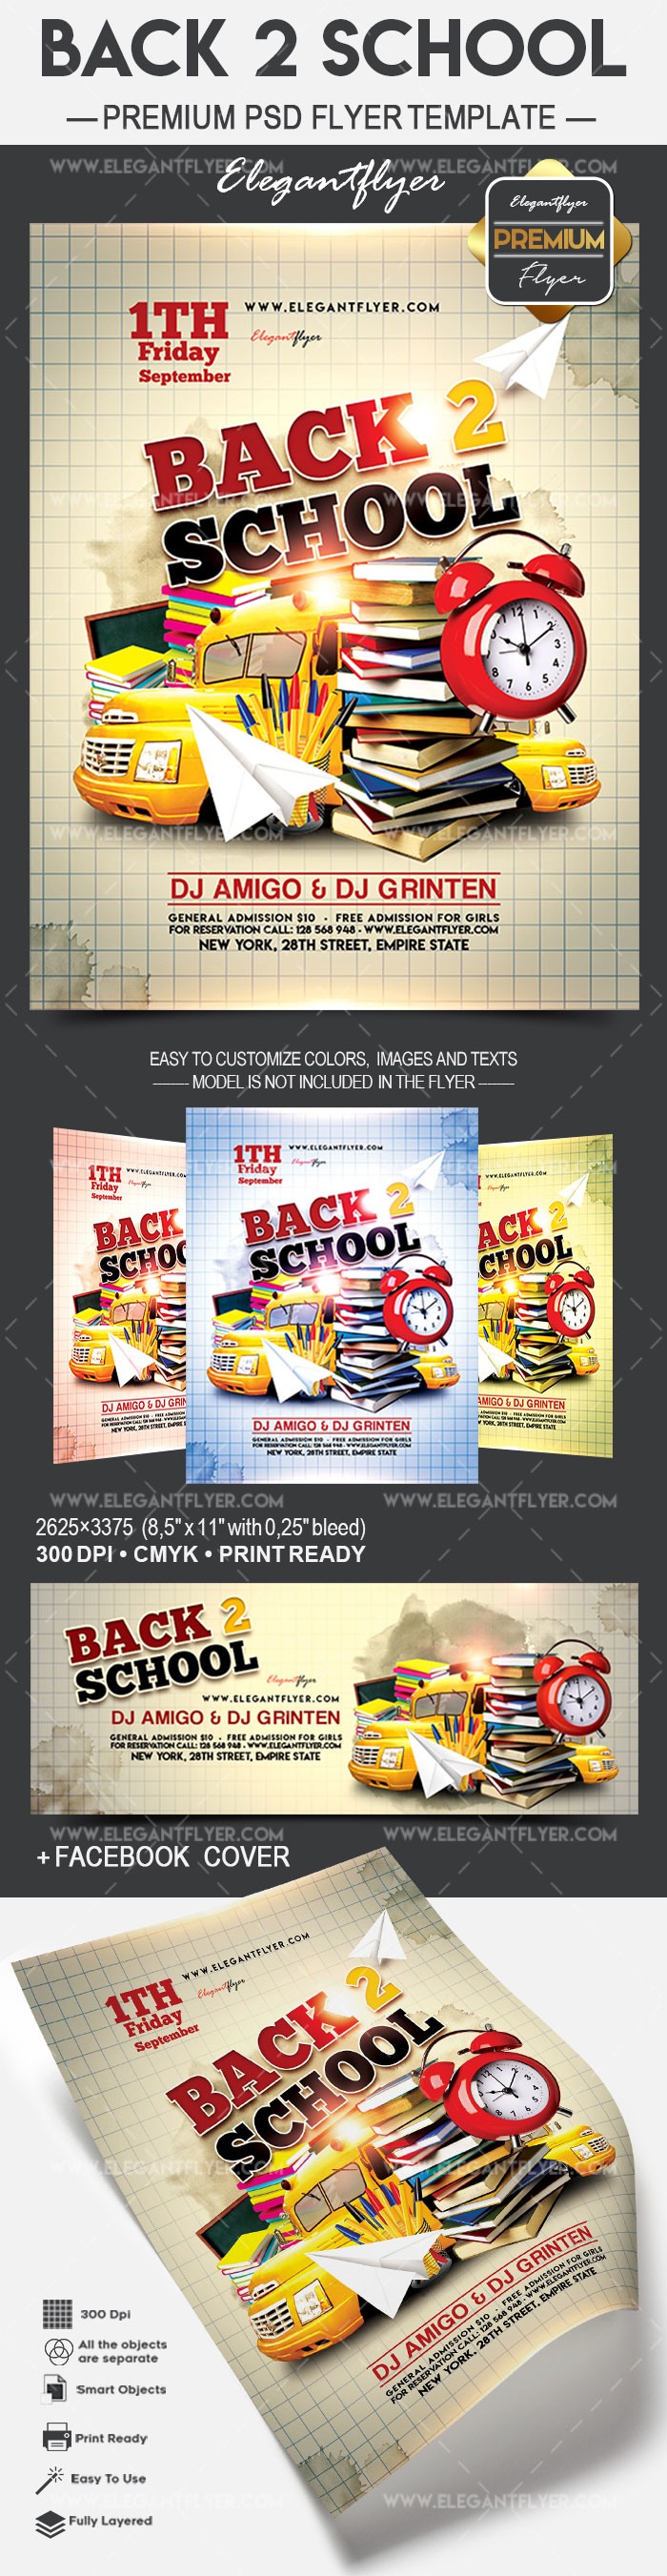 Flyer for Back to School